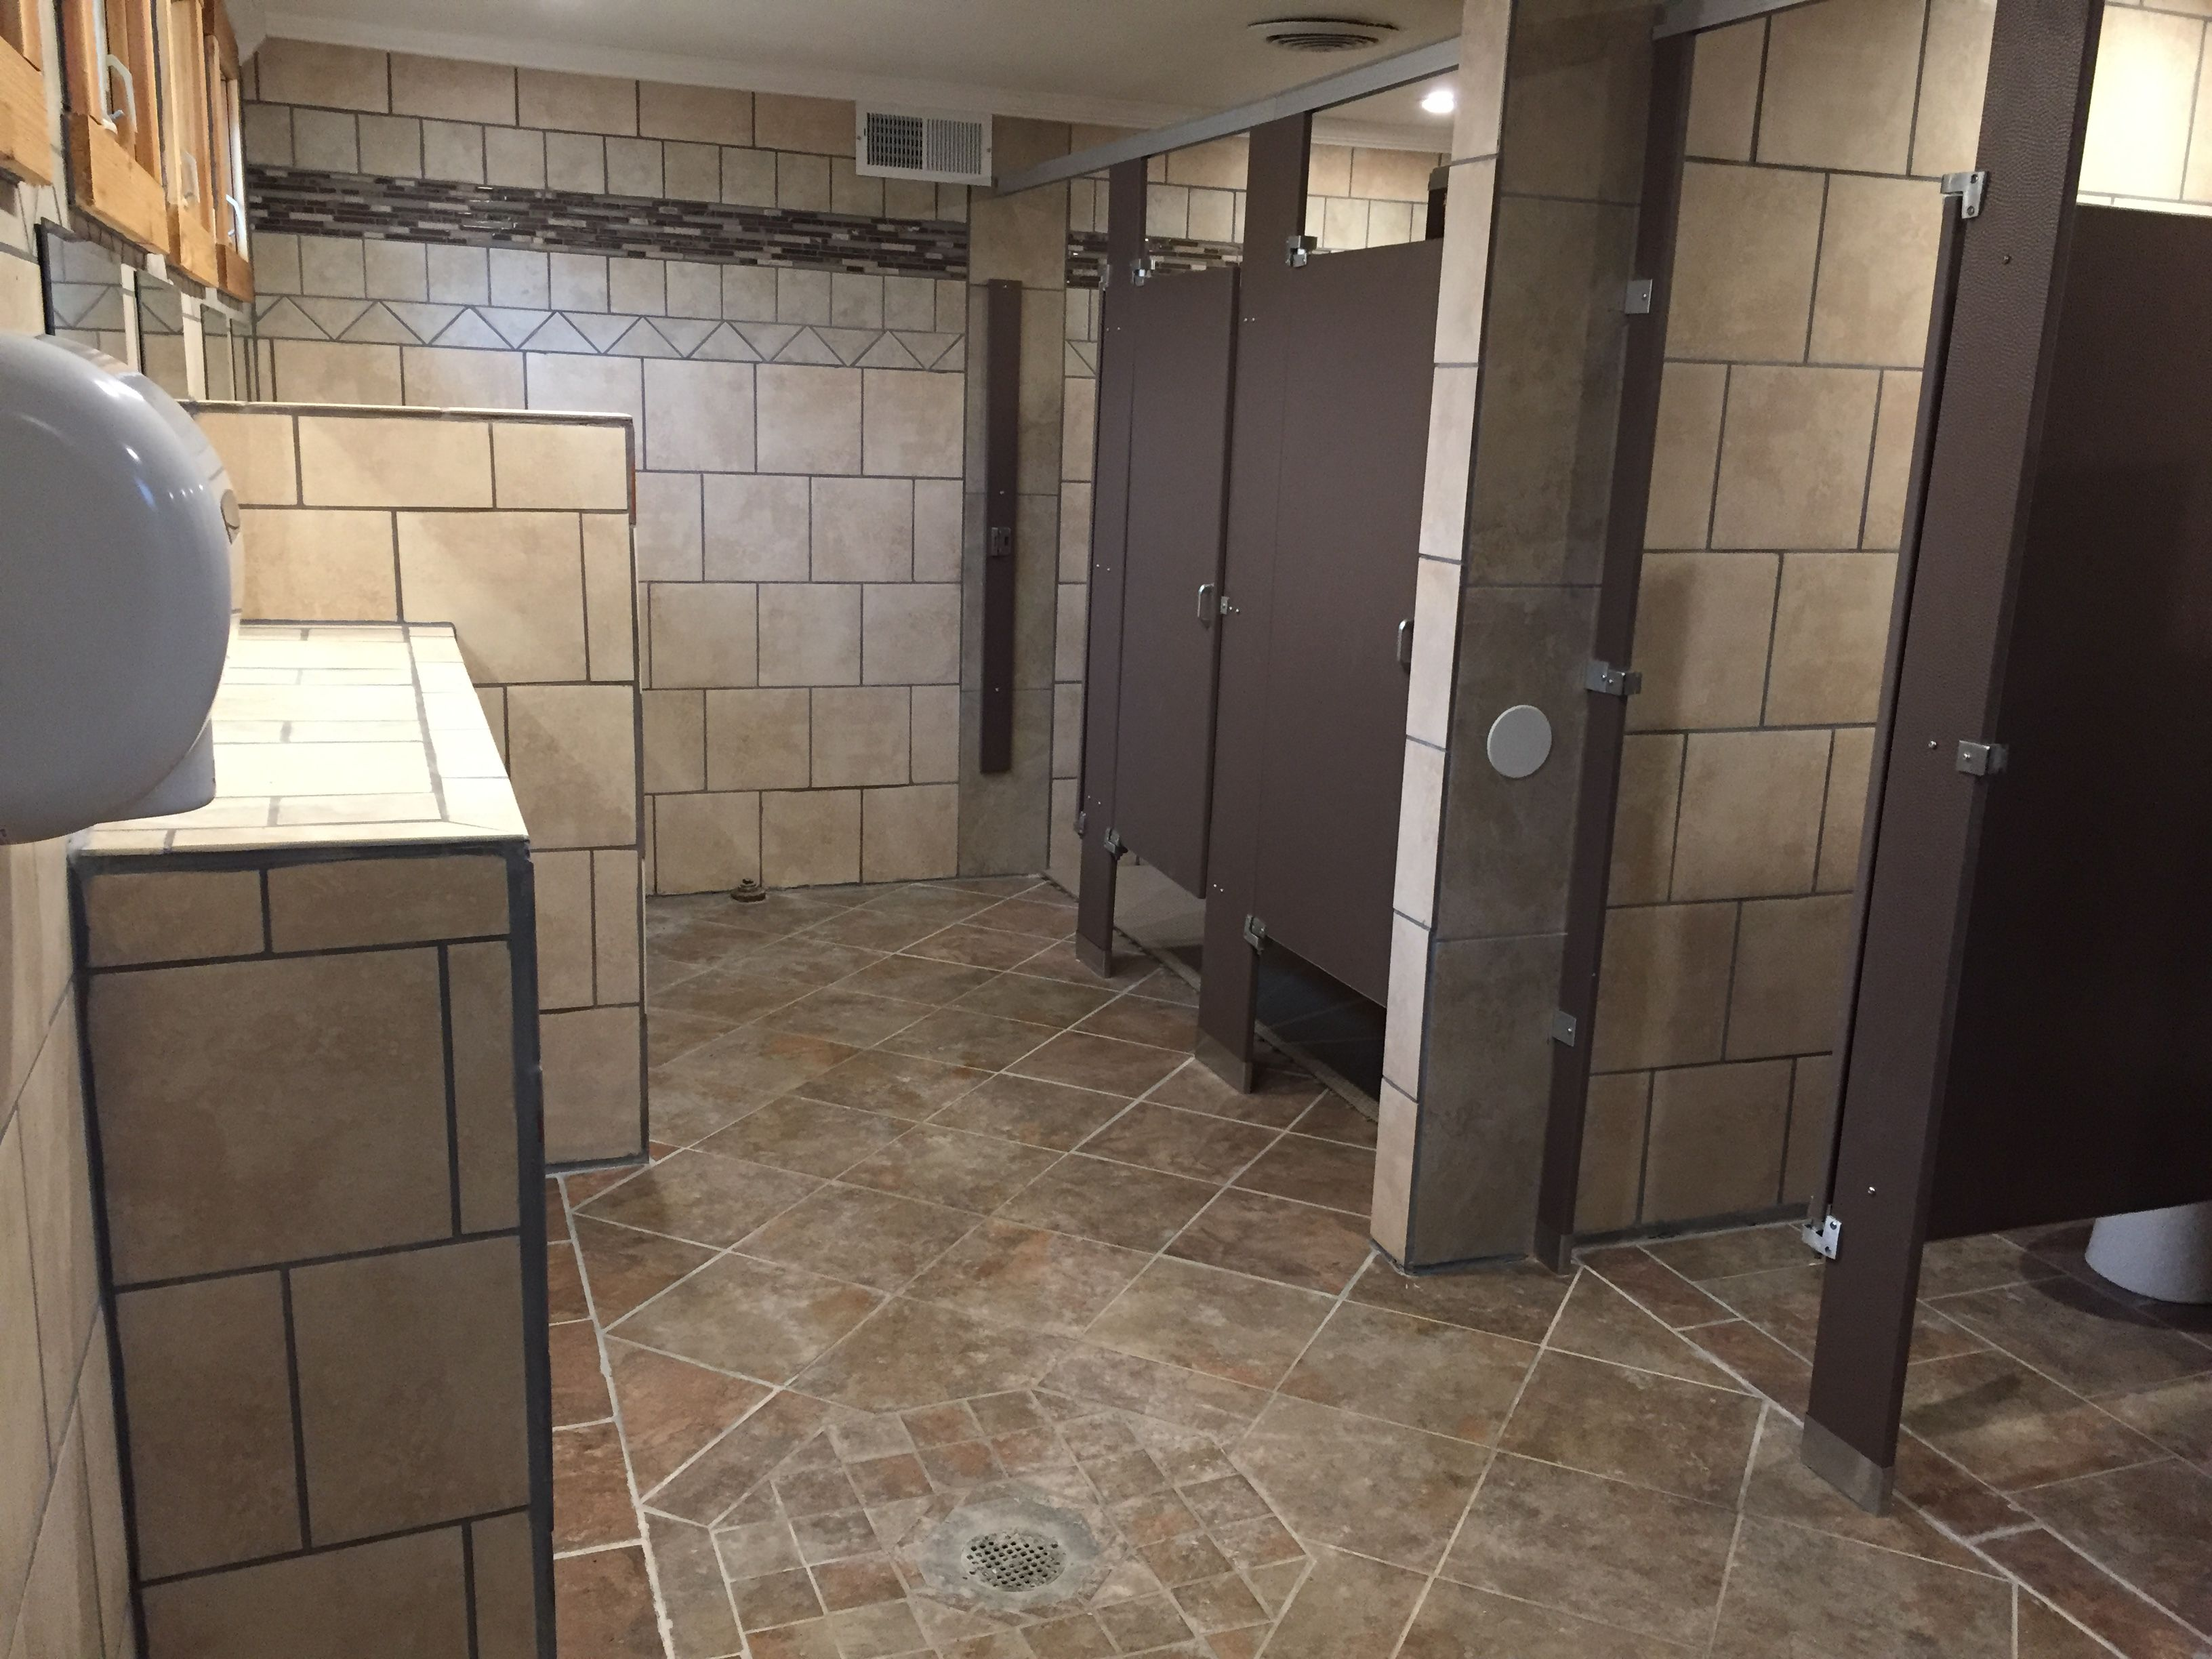 Extensive Bathroom Remodel At The Indianapolis Koa Holiday Simple Bathroom Remodel Indianapolis Review